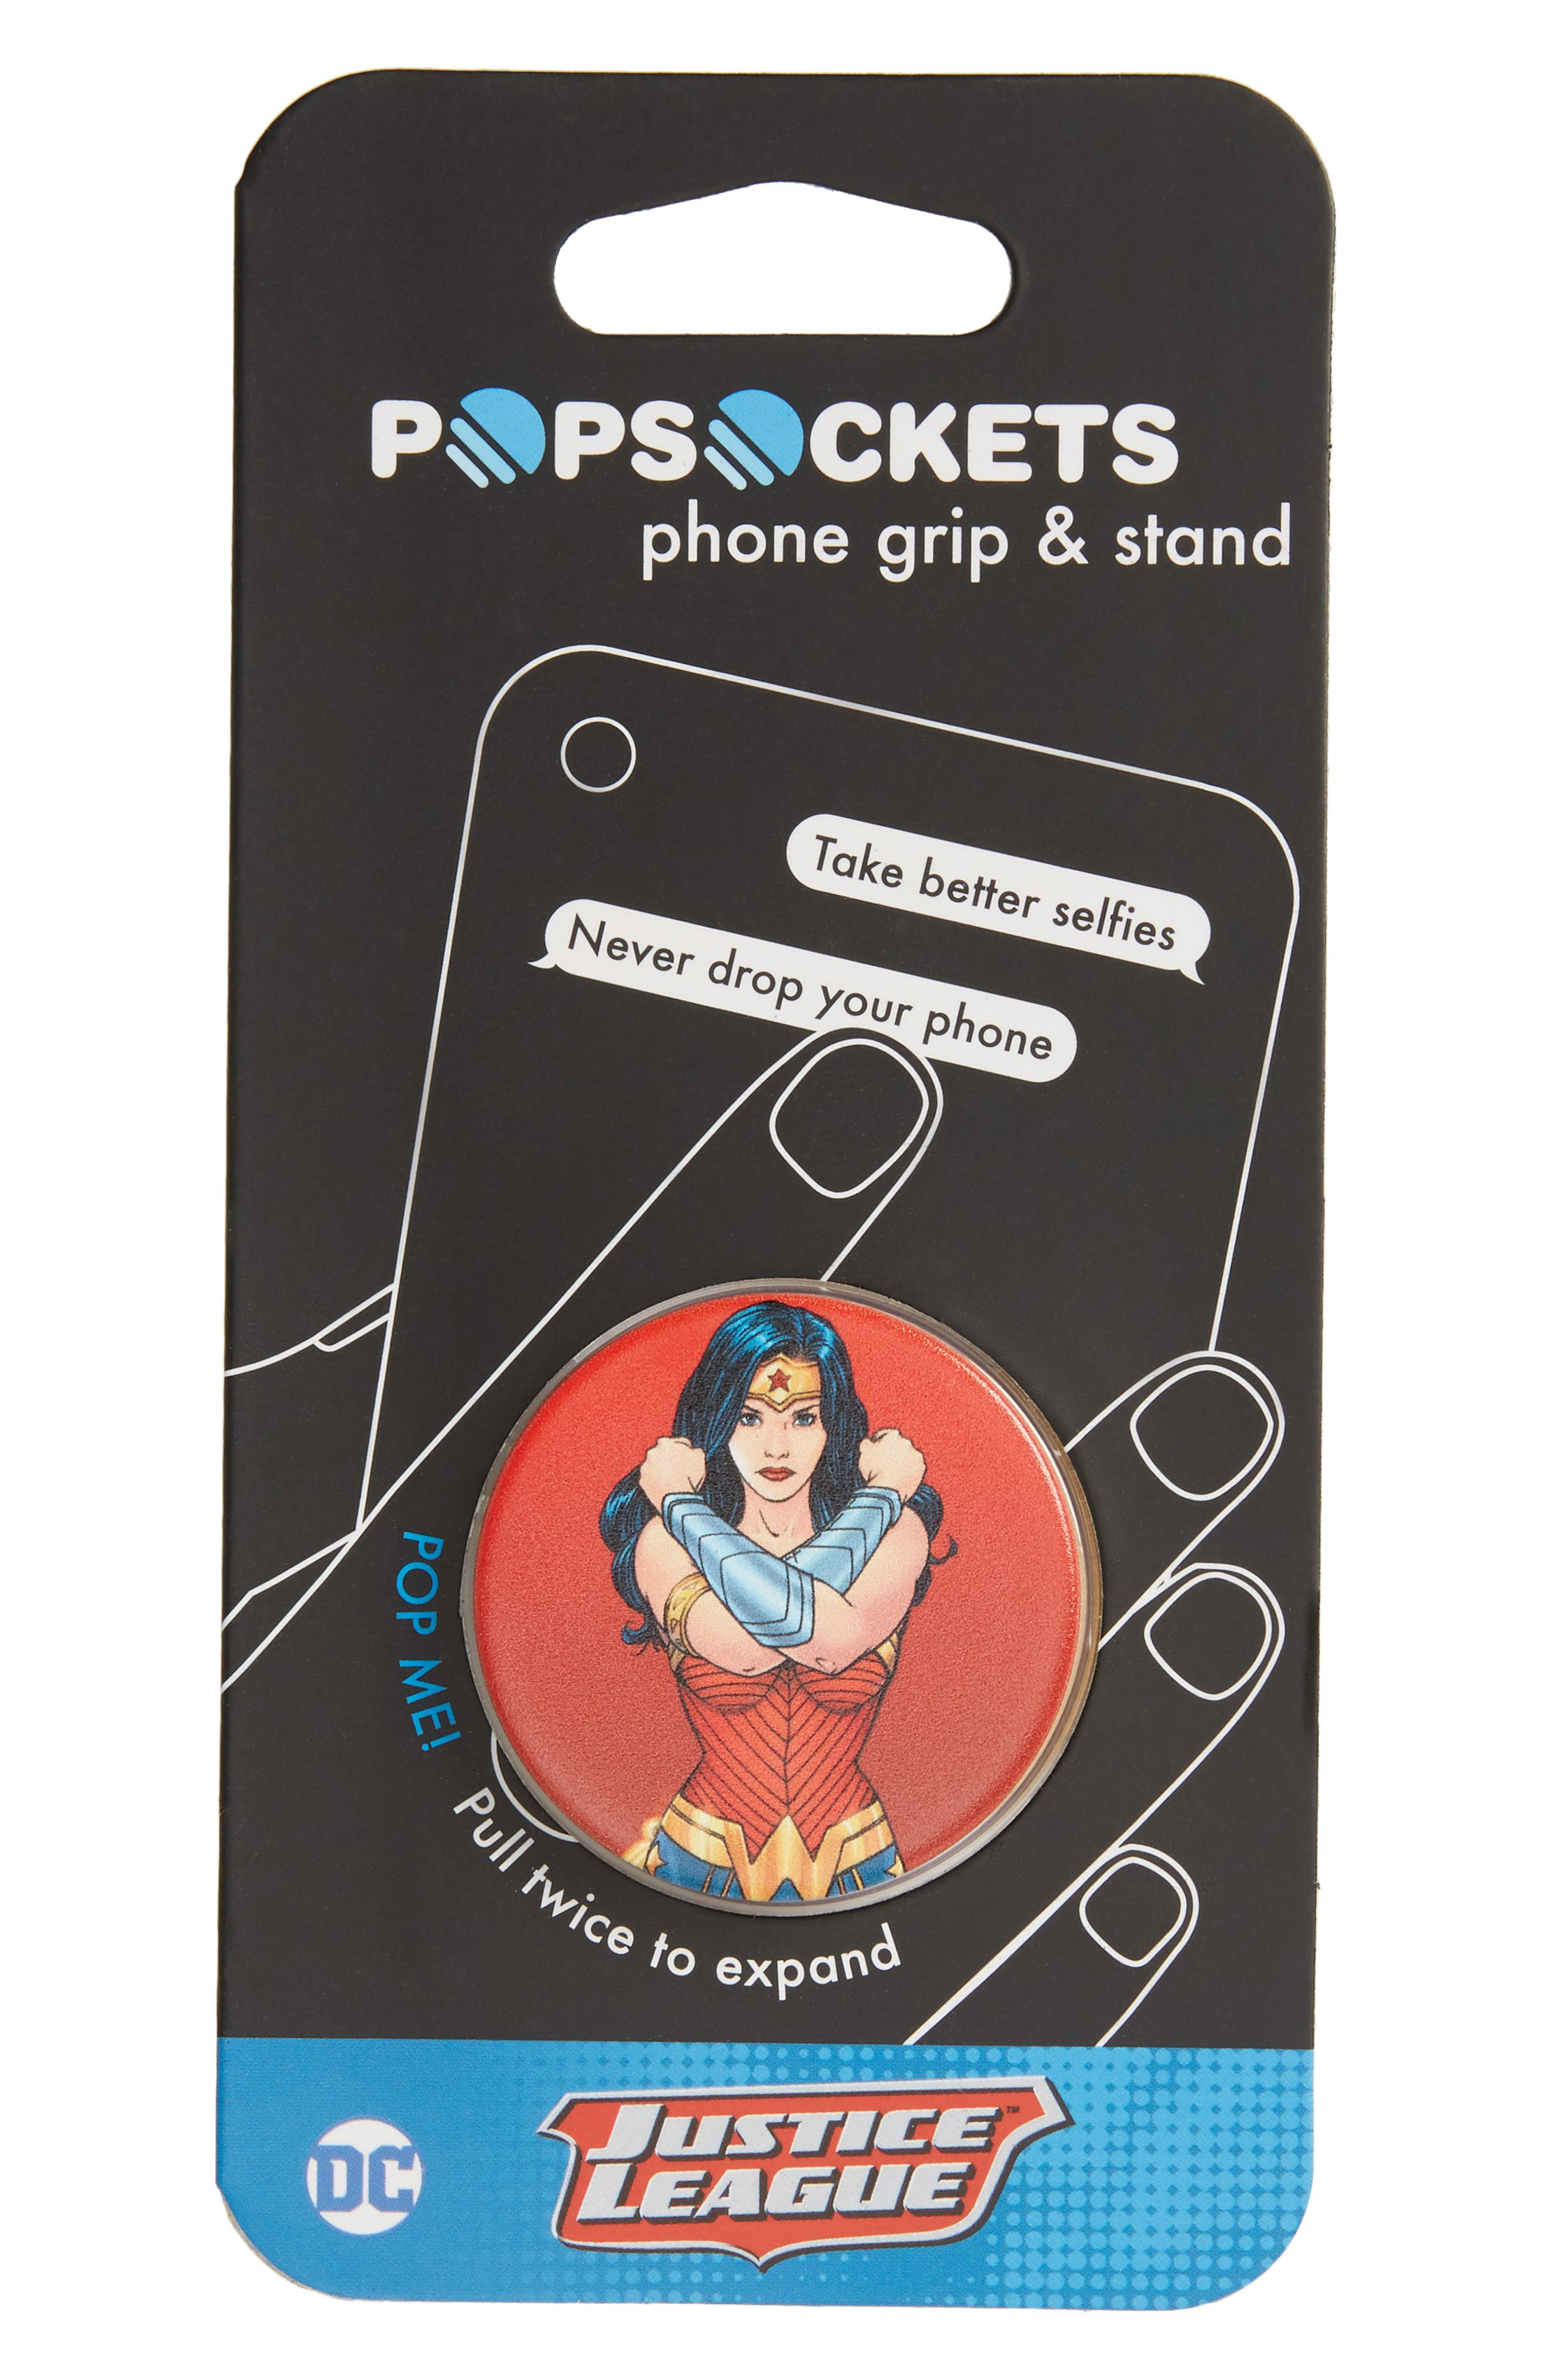 DC Wonder Woman Cell Phone Grip & Stand,                         Main,                         color, Dc Wonder Woman